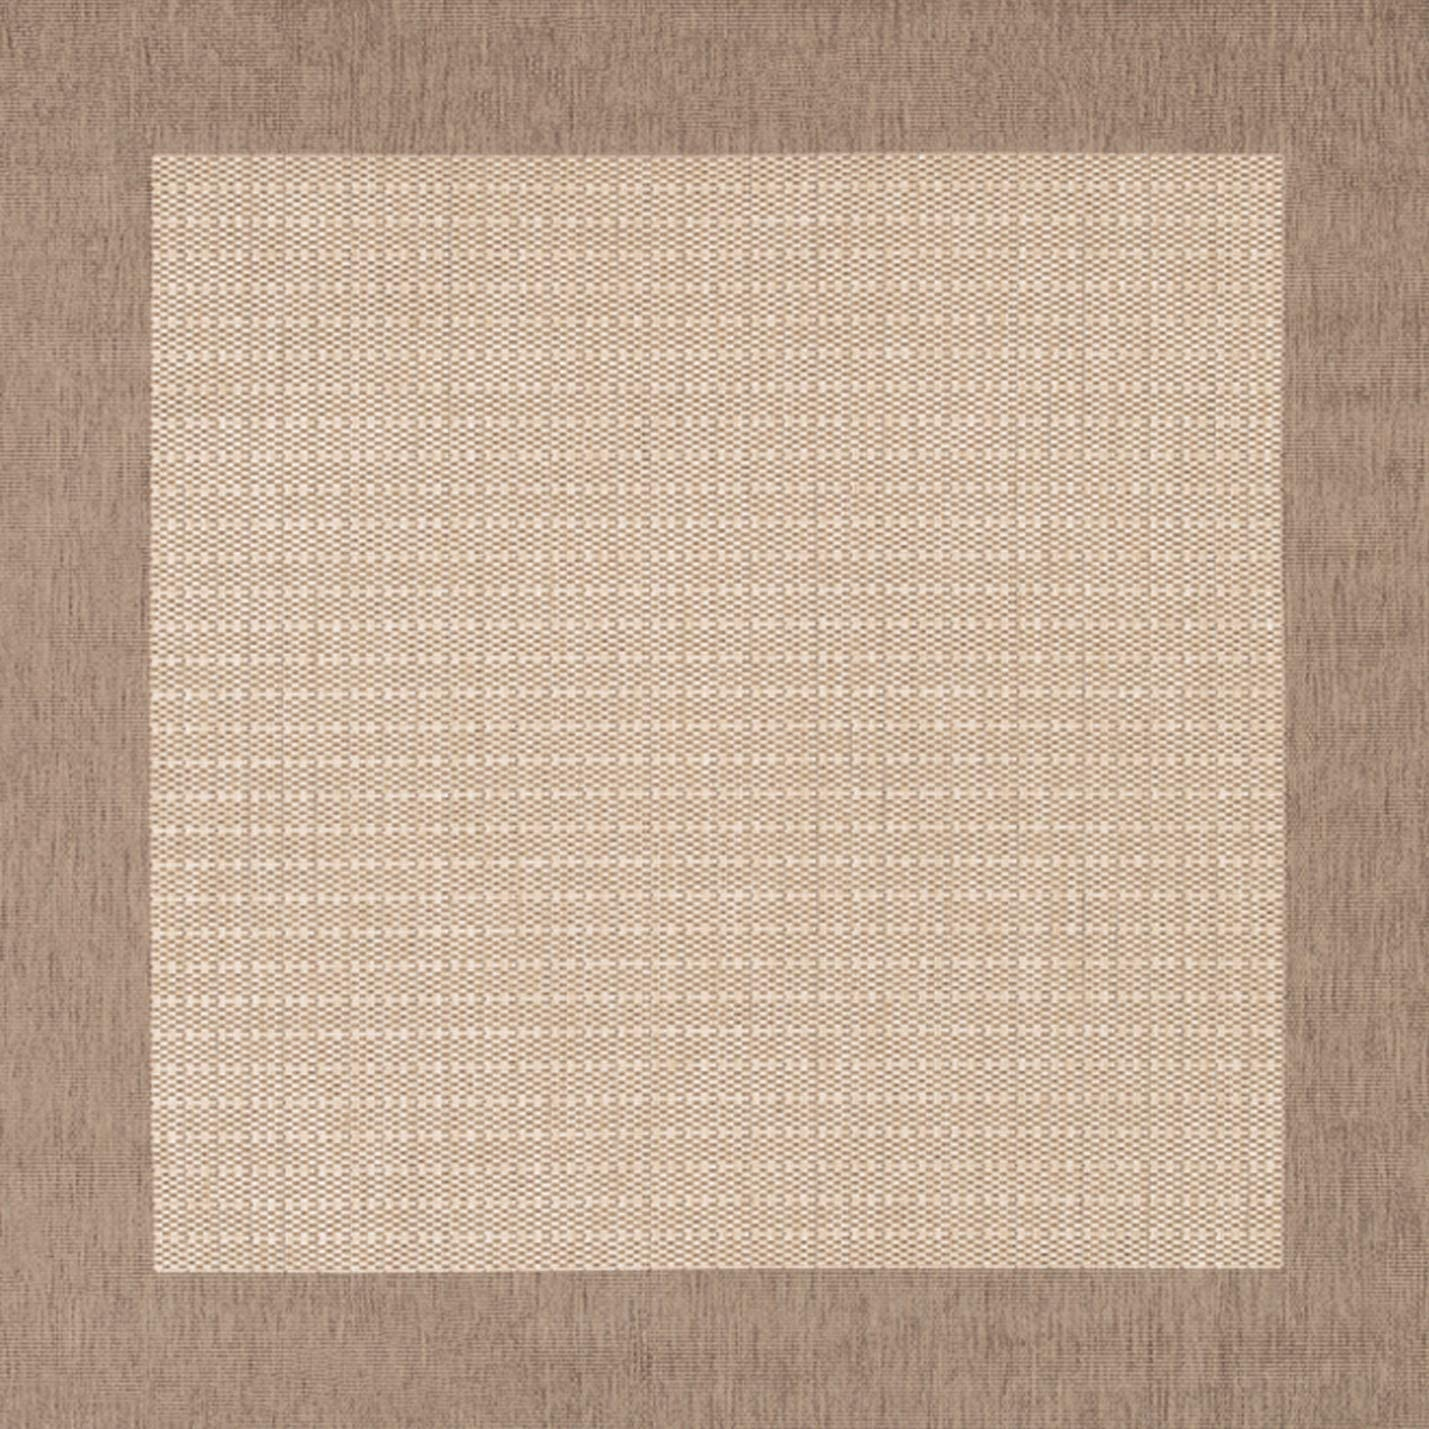 Couristan 1005 3000 Recife Checkered Field Natural Cocoa Rug